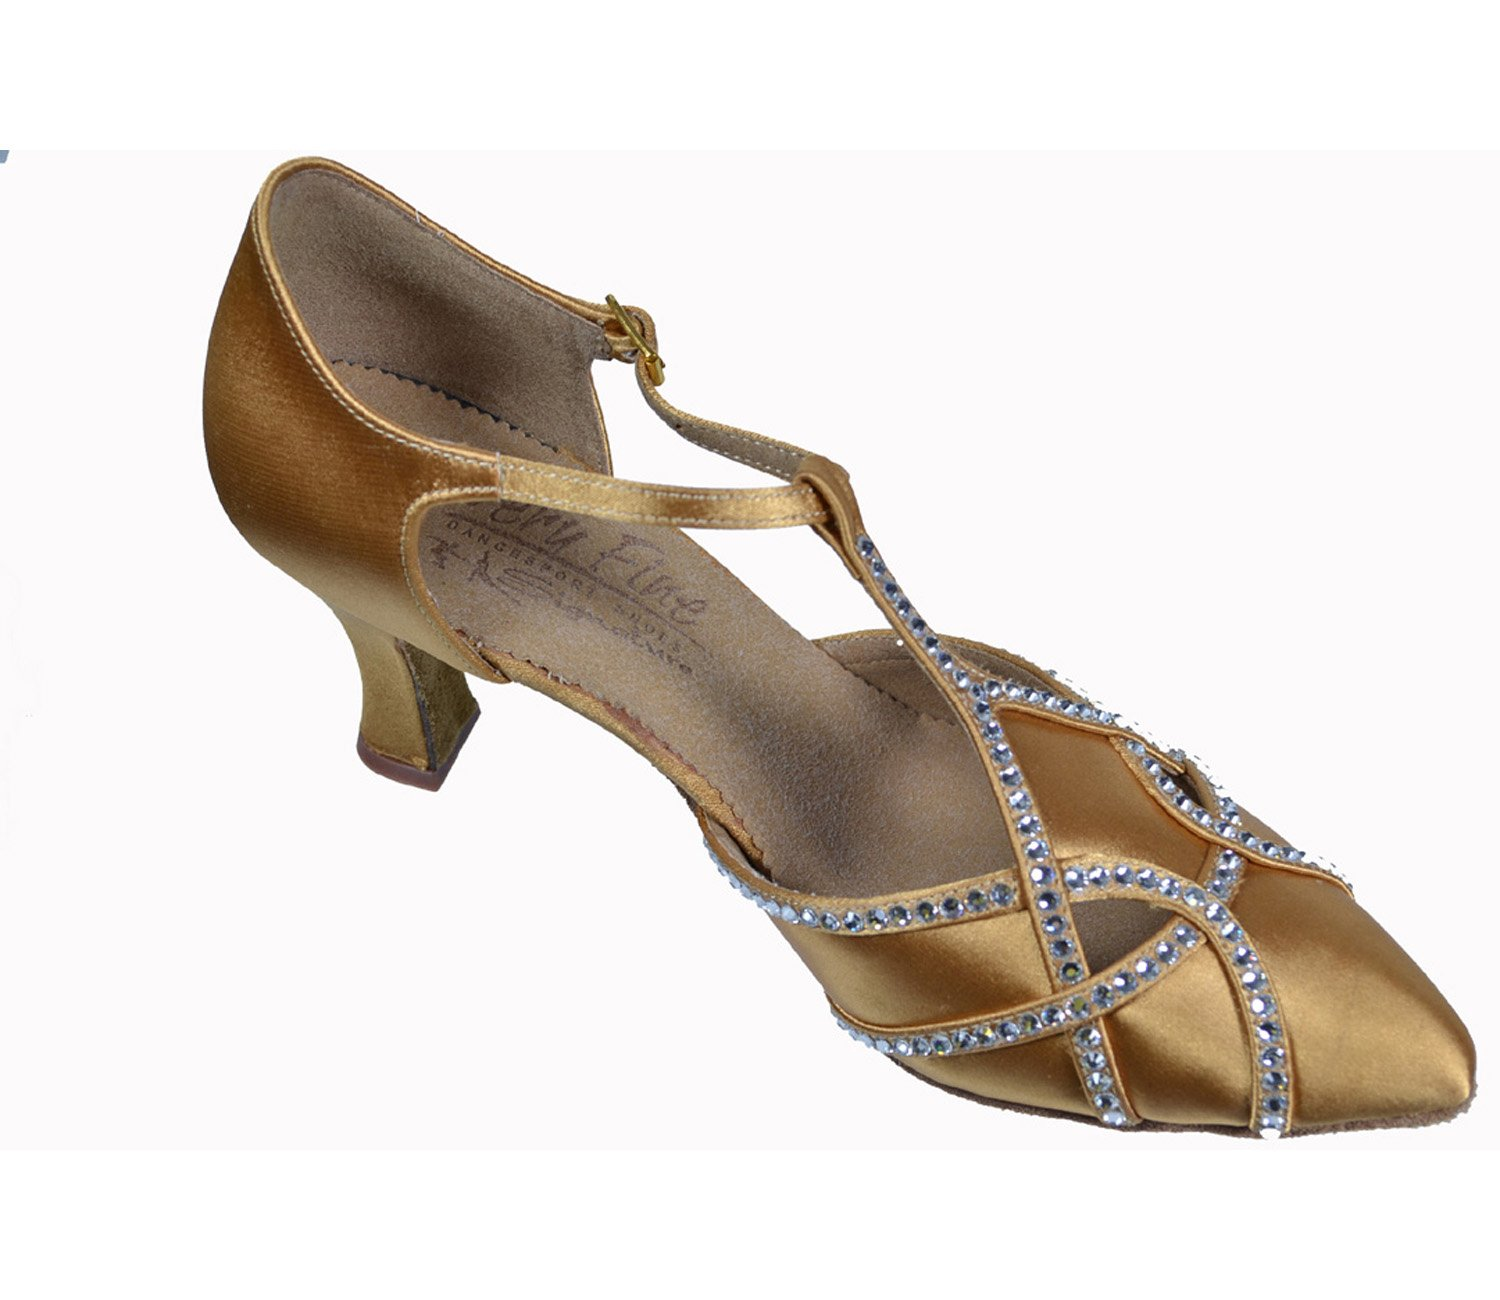 Very Fine Ladies Women Ballroom Dance Shoes RHEK11002 - S3801 Tan Satin Clear Rhinestones 2.5'' Heel (9.5M)